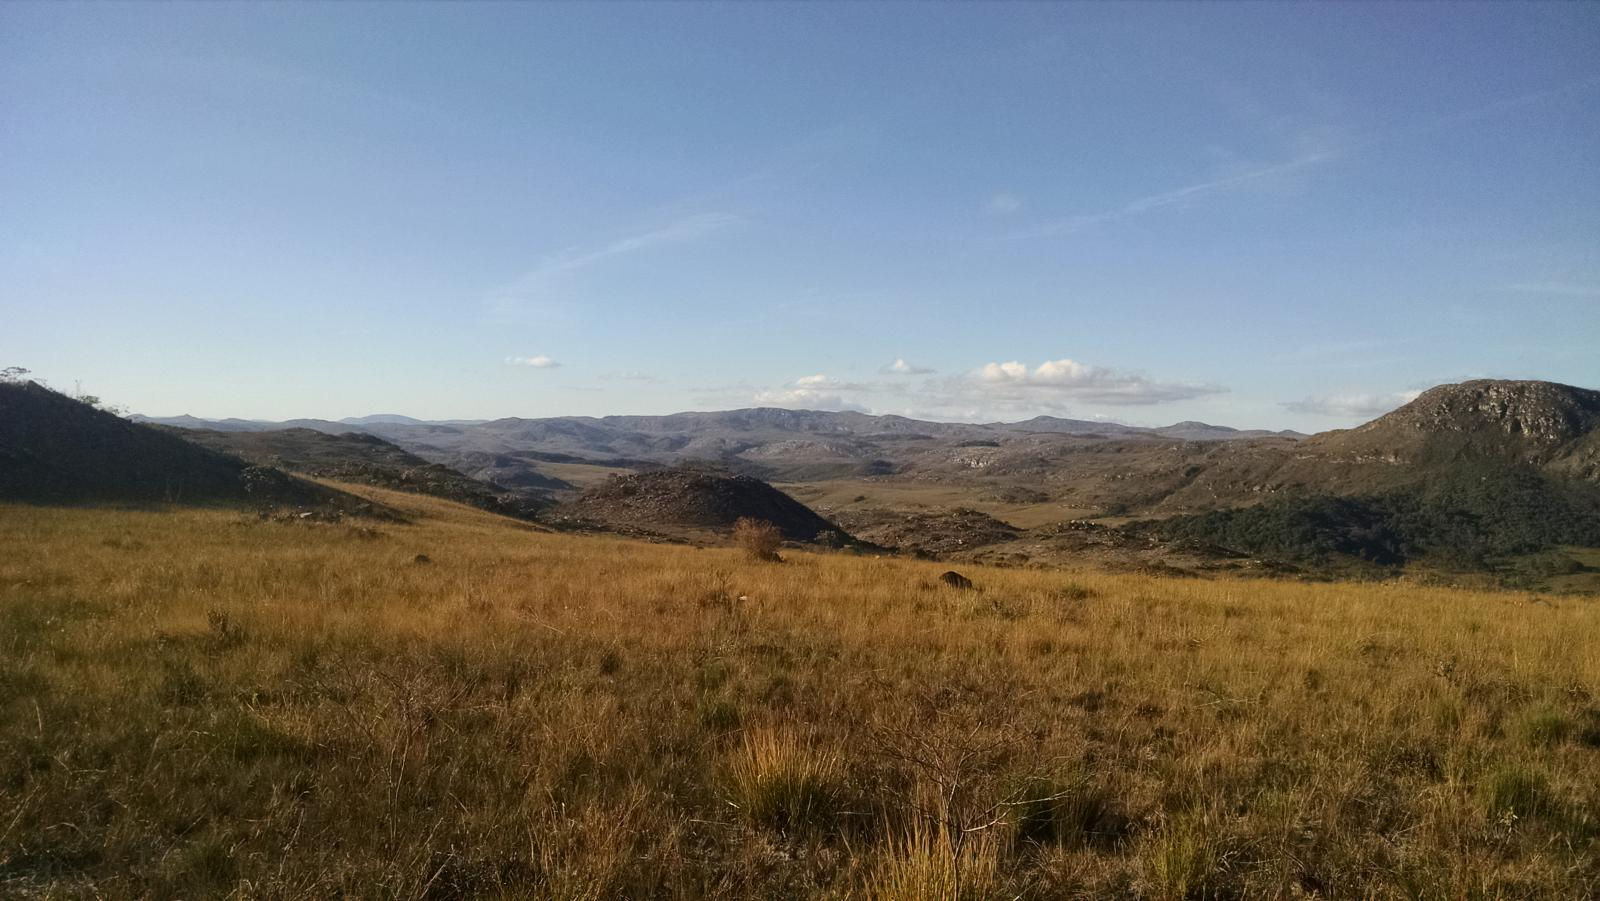 Foto di Travessia Altamira x Serra do Cipó (via Bandeirinha)